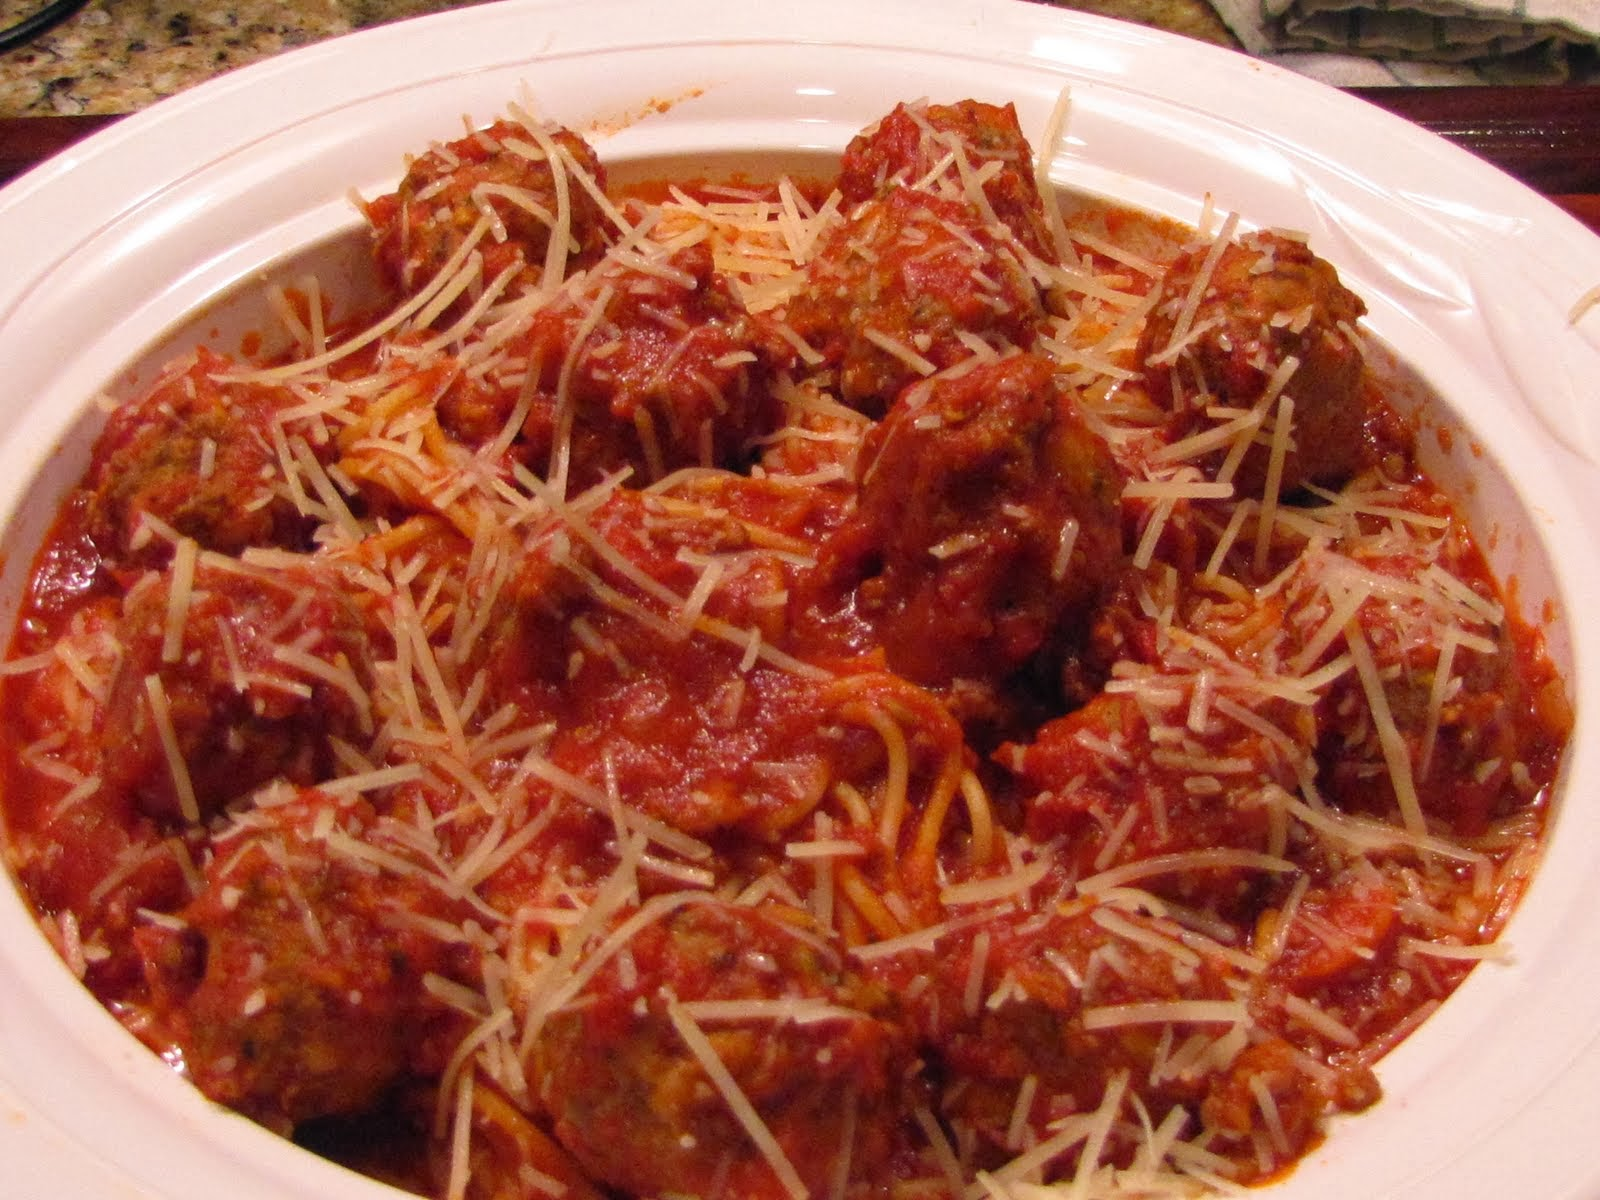 Spaghetti+and+meatballs.JPG